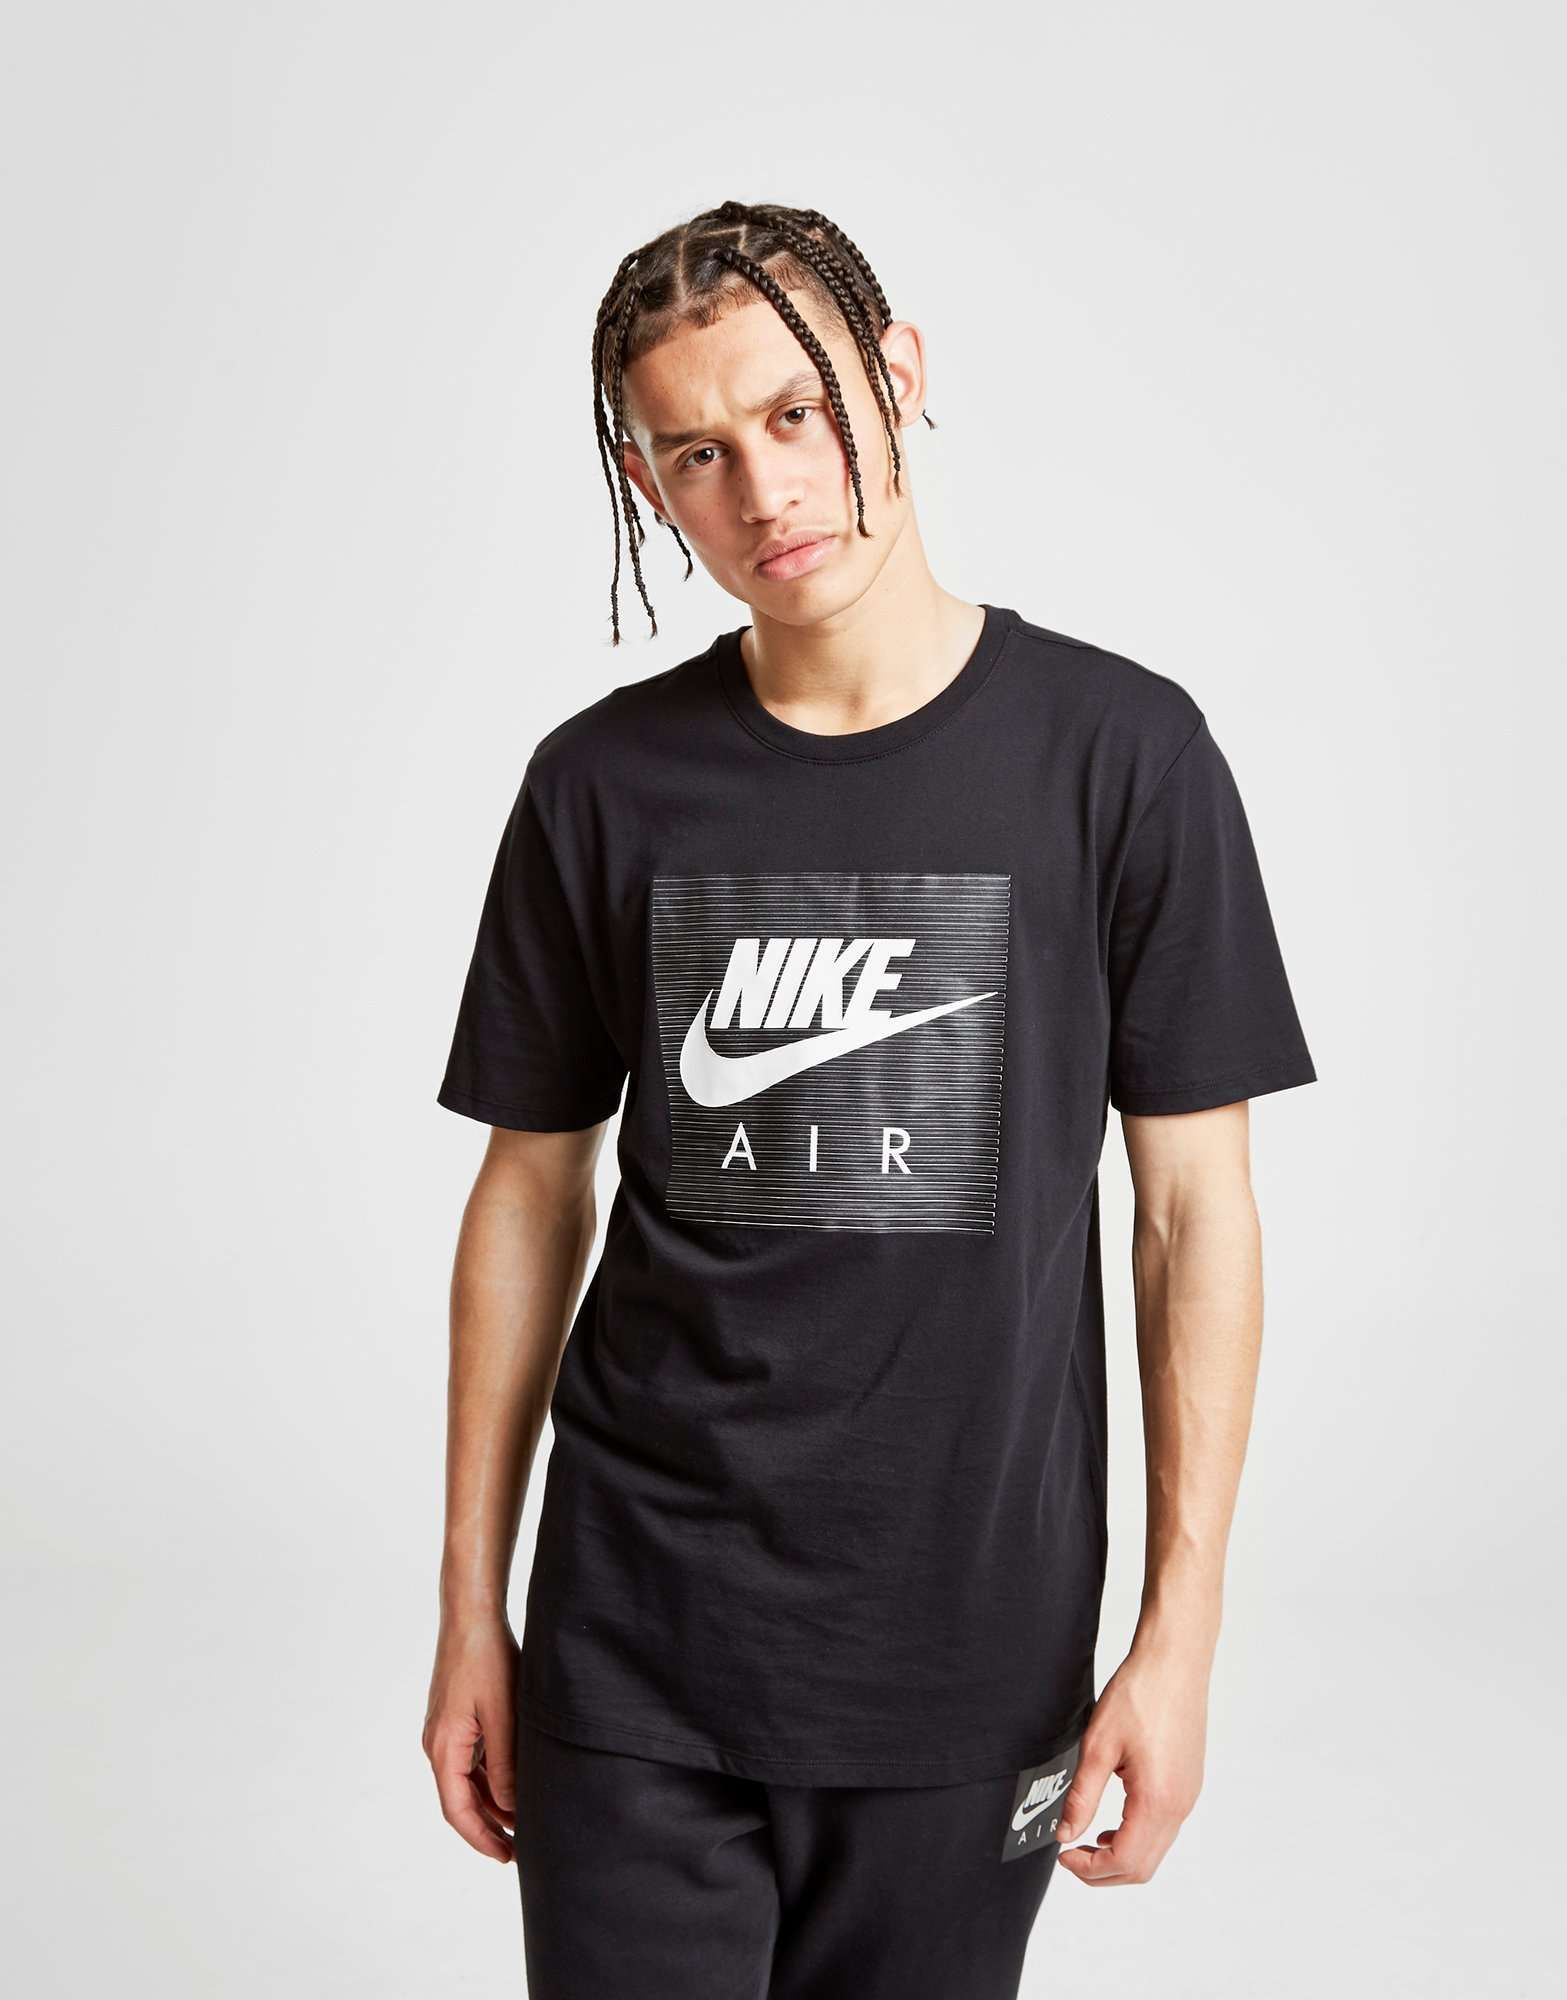 Men Nike T Shirts & Vest | JD Sports